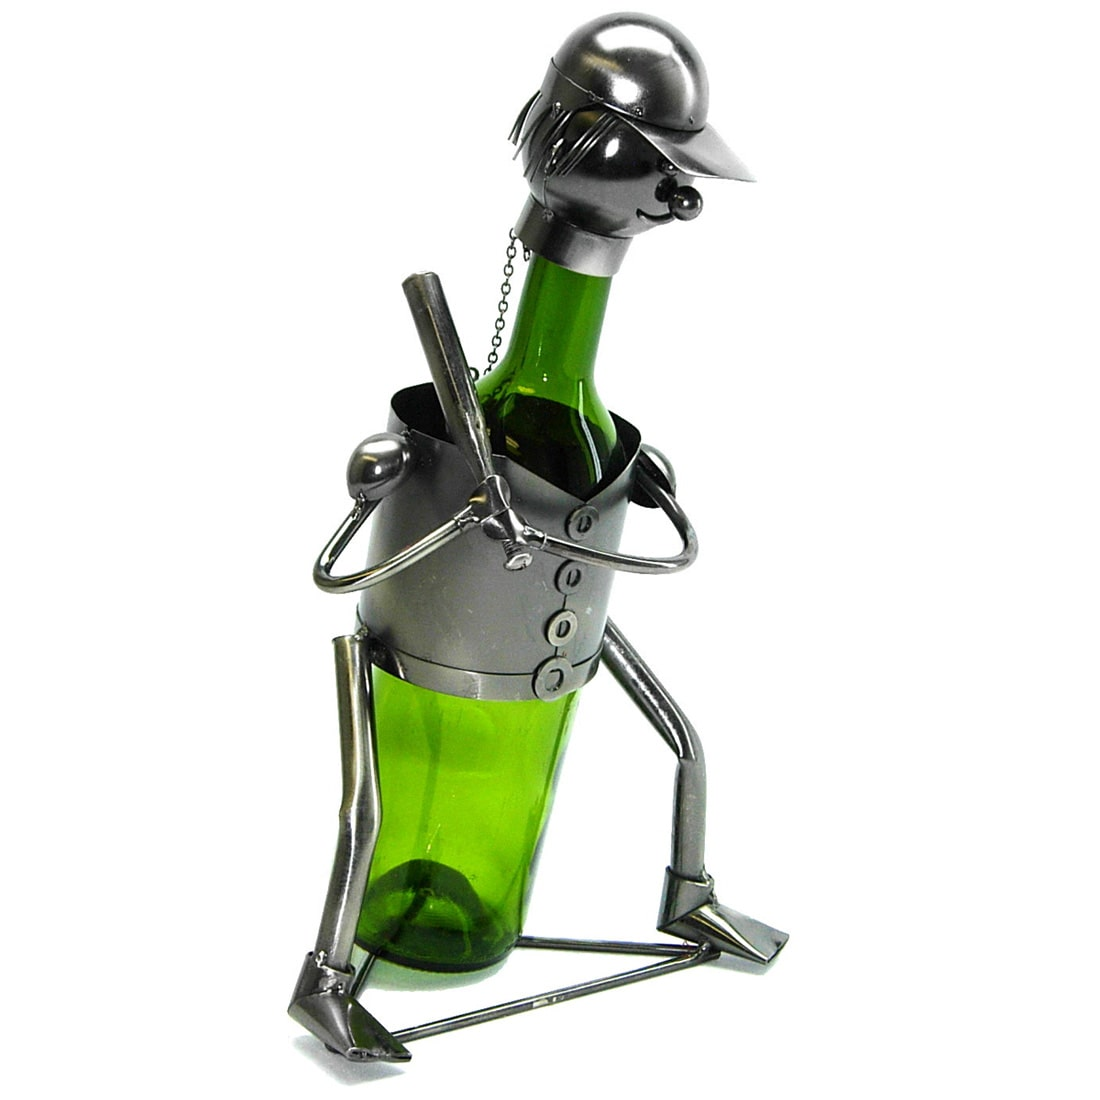 3starimex Wine Bottle Holder Baseball Wine Caddy